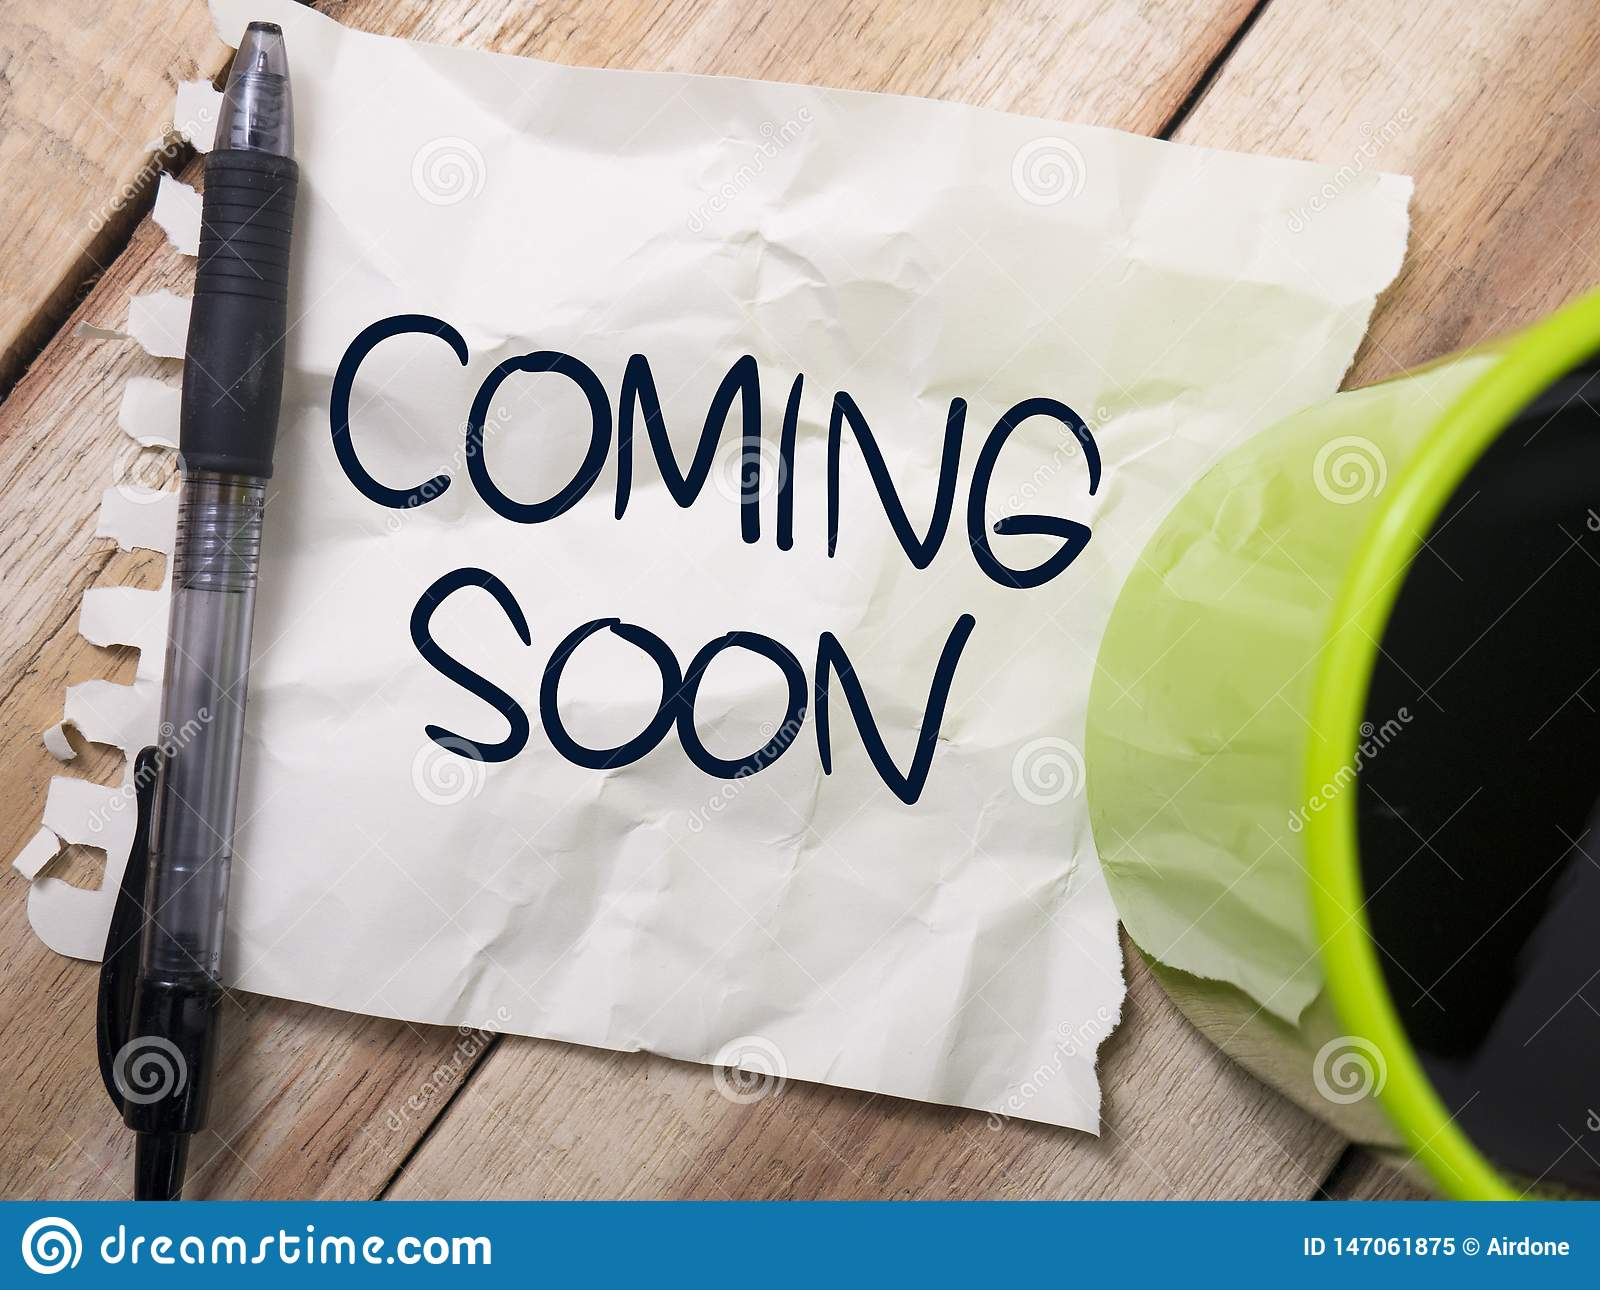 Coming Soon Words Typography Concept Stock Image Image Of Business Label 147061875